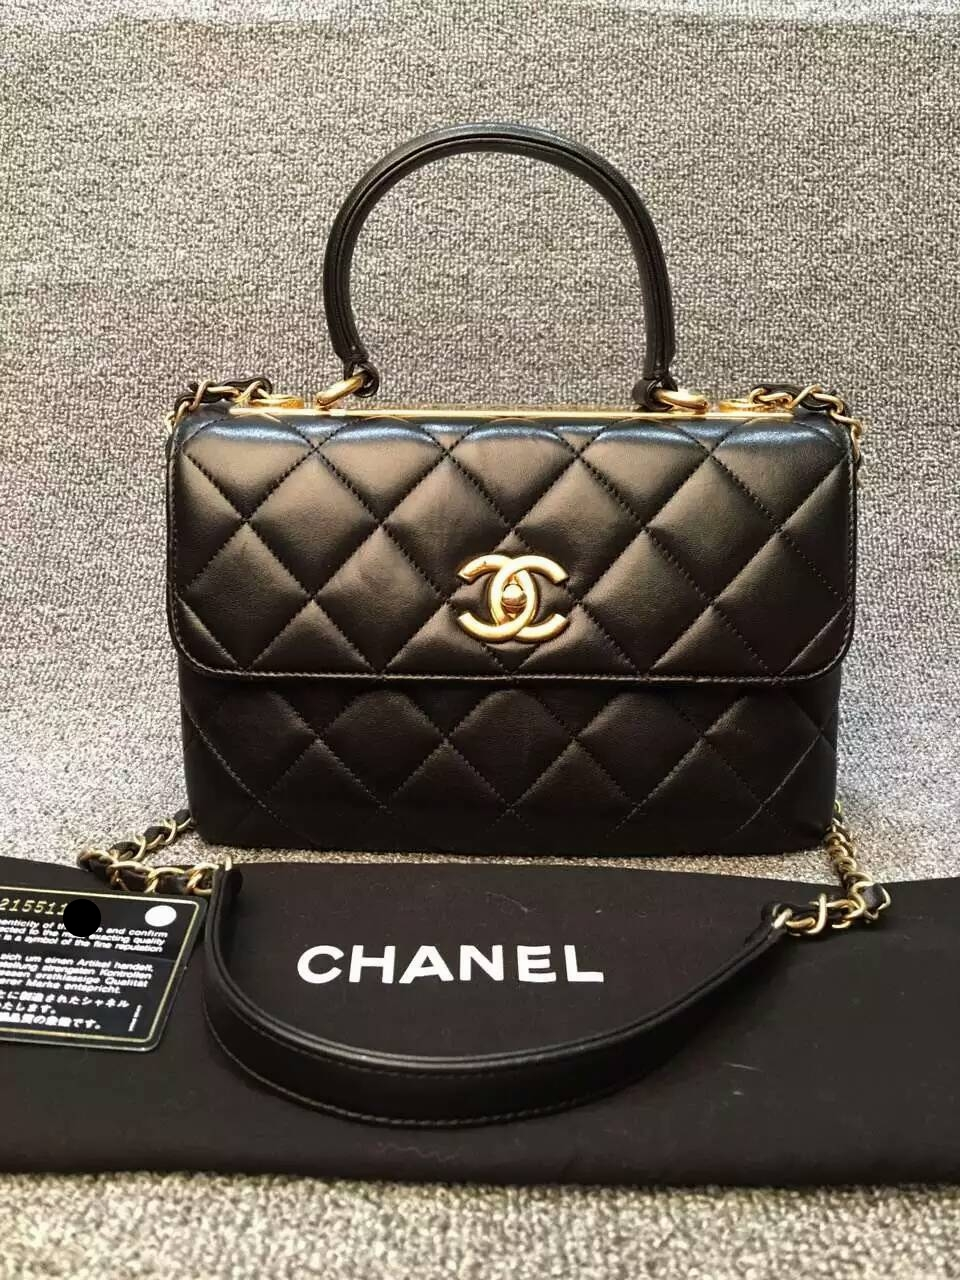 Chanel Trendy CC Small Dual Handle Flap Bag — CONSIGNMENT BOULEVARD 4fef8c7e0feb0